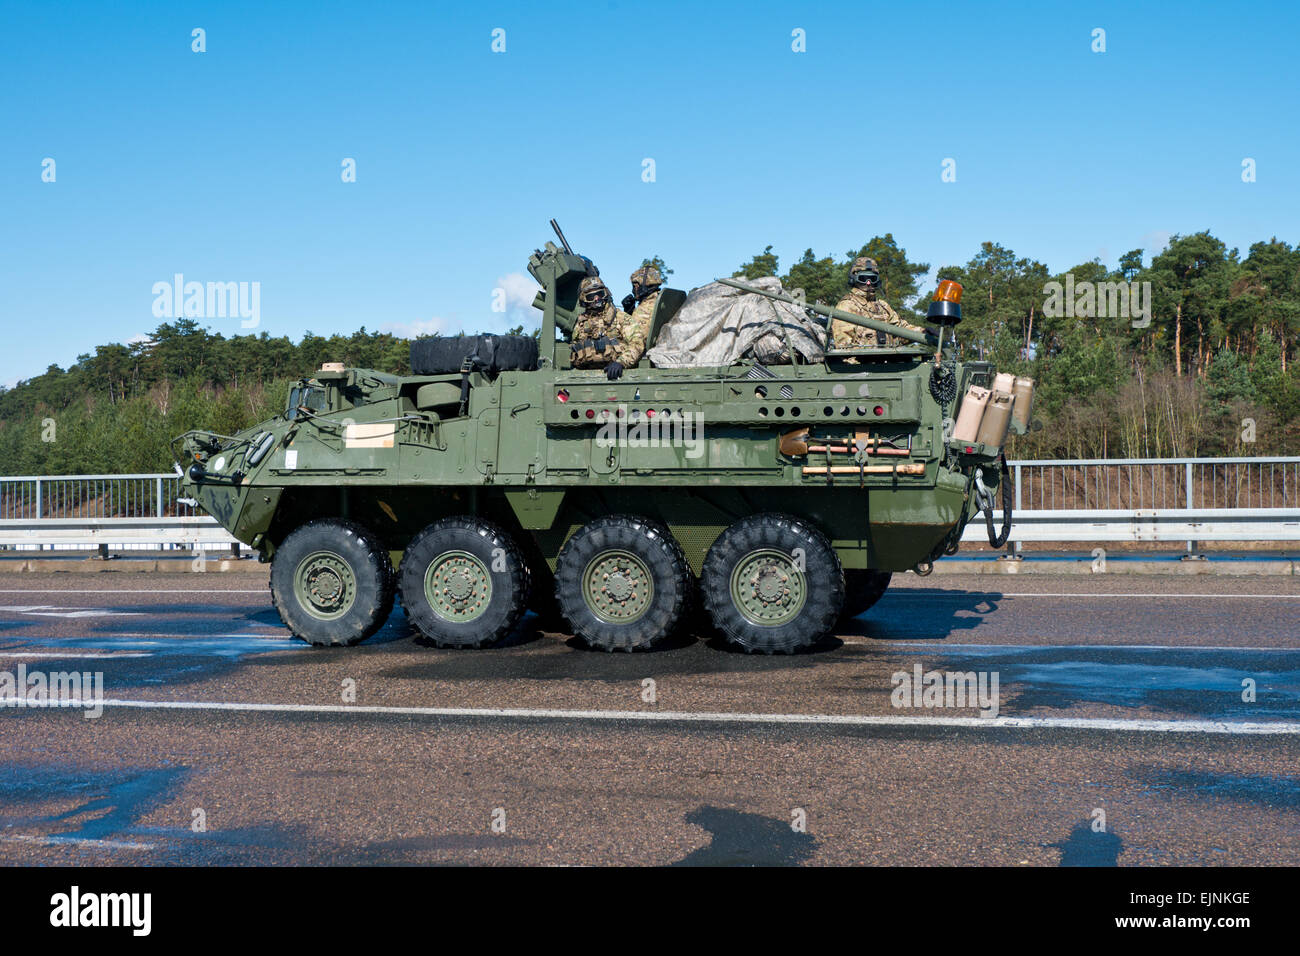 Demonstration of US army March 30, 2015 in Czech republic. Armored vehicle Stryker - Stock Image